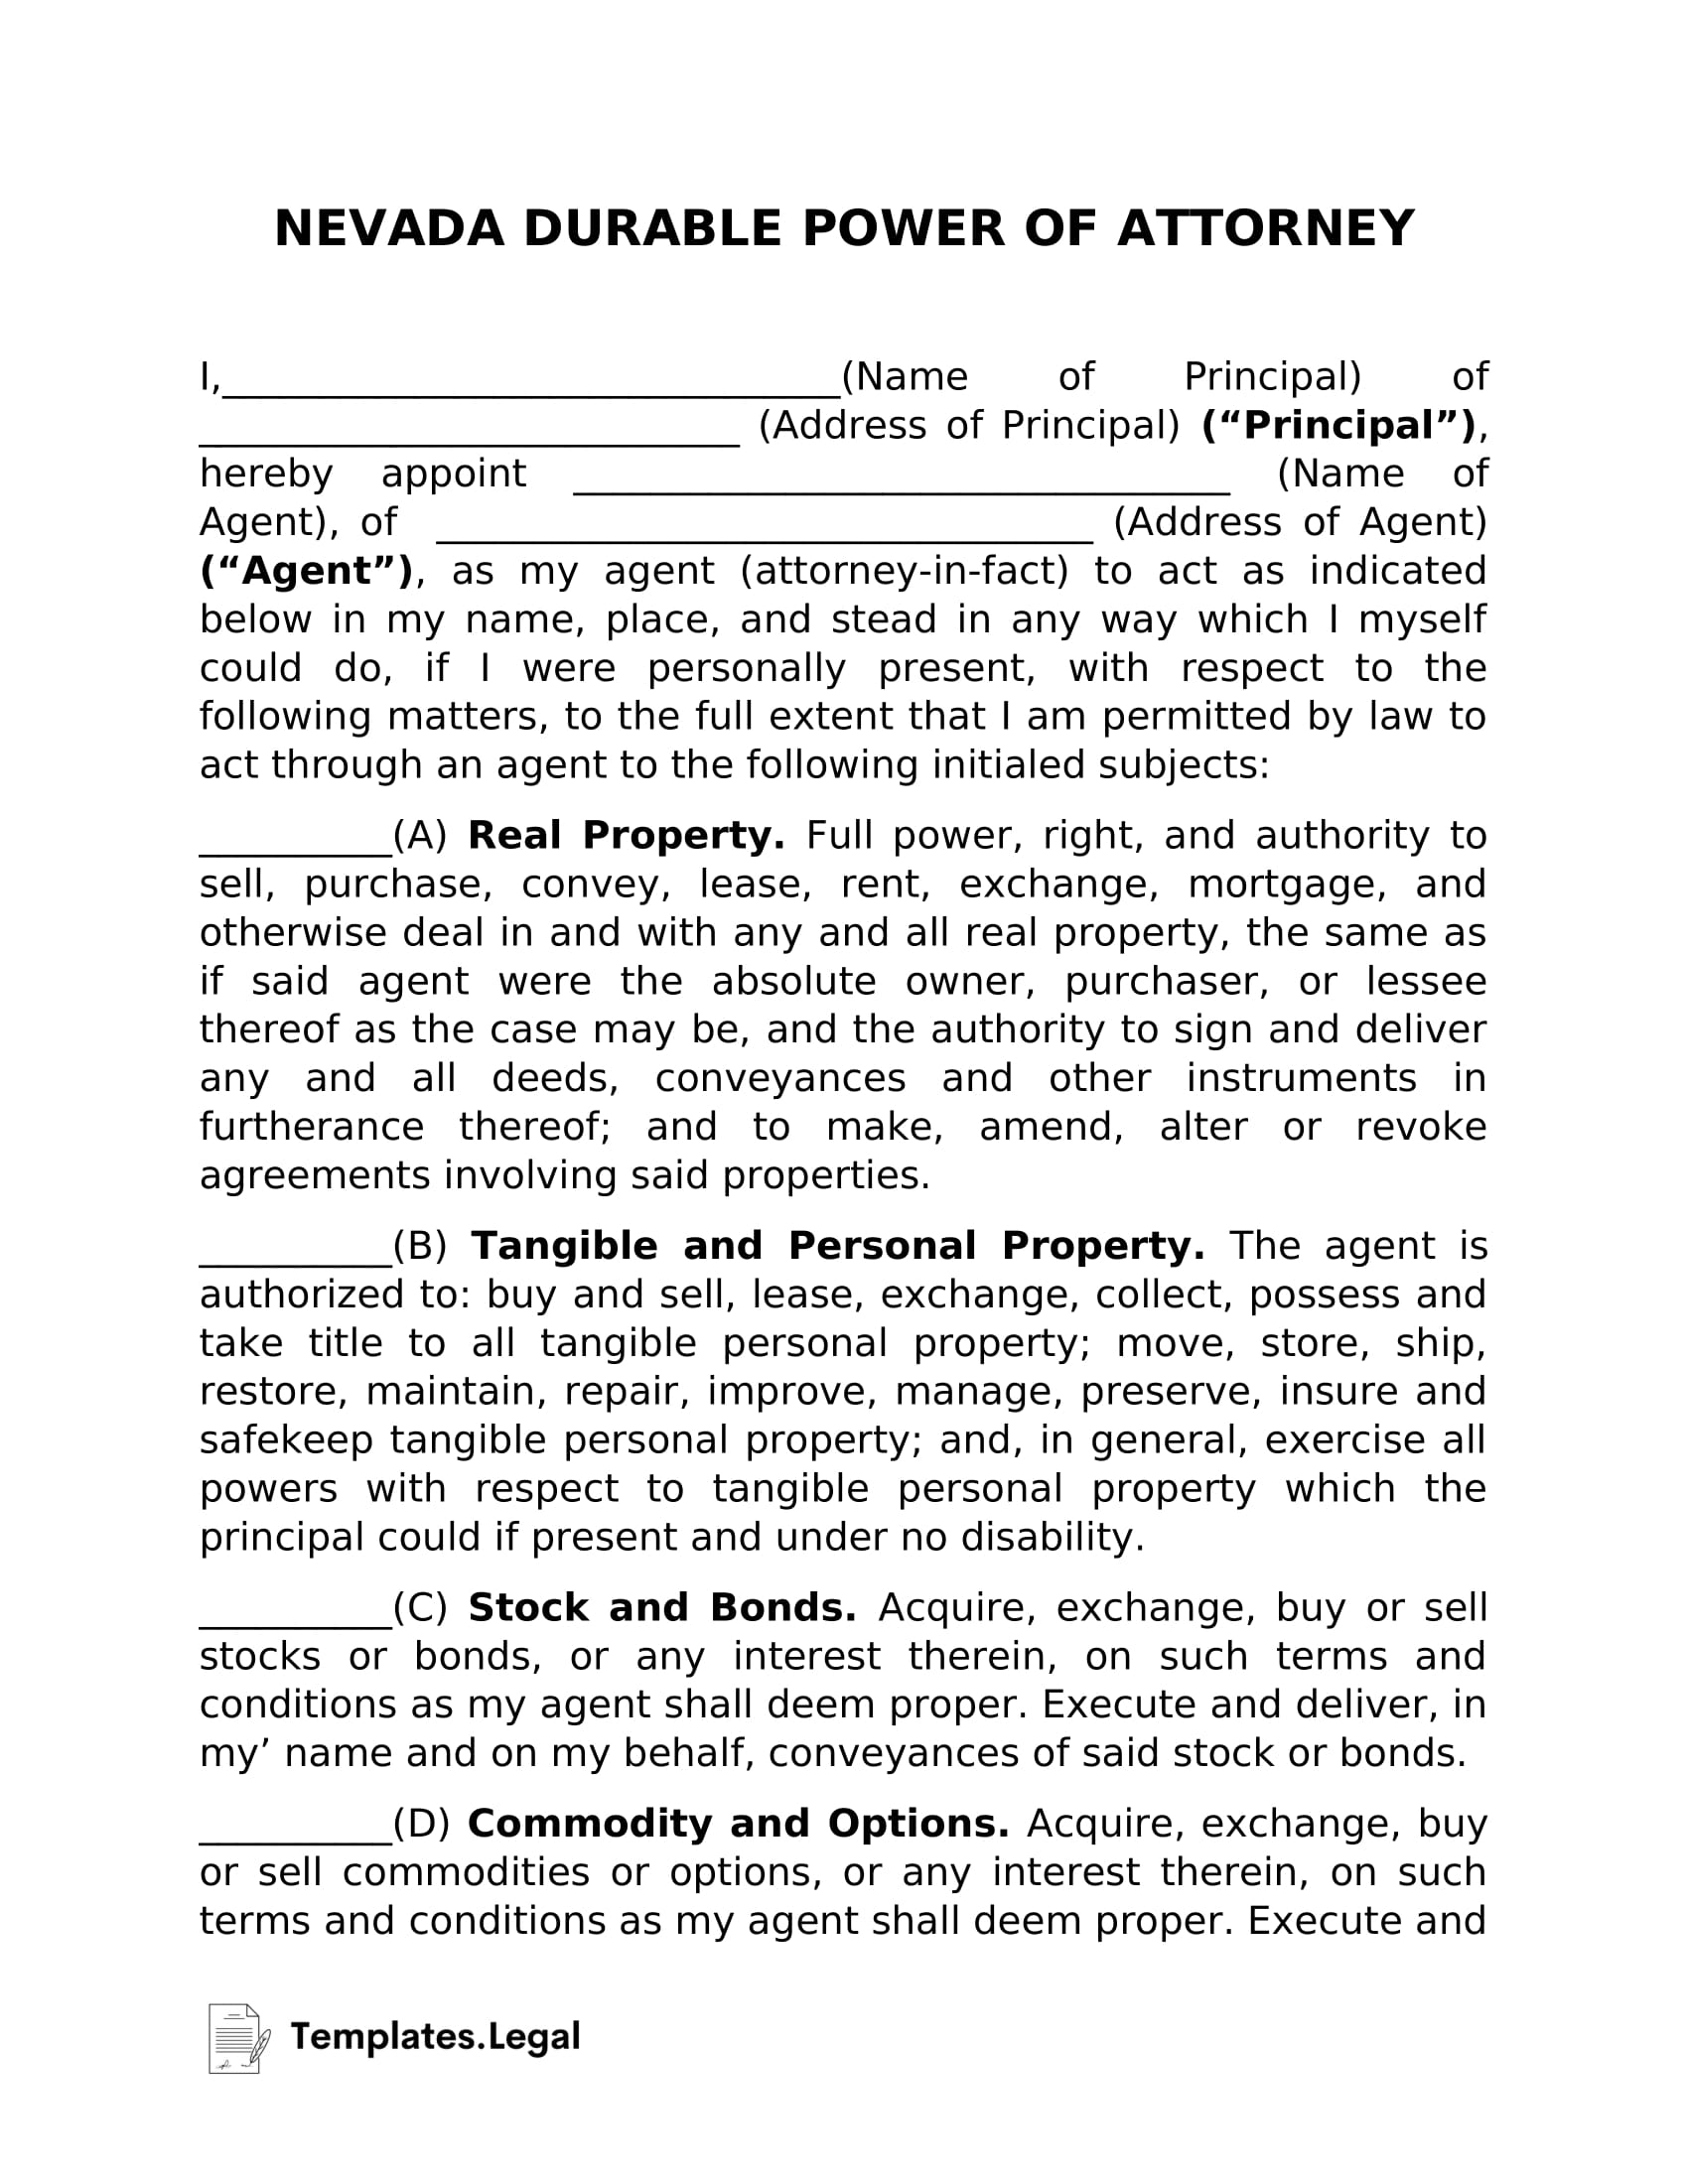 Nevada Durable Power of Attorney - Templates.Legal